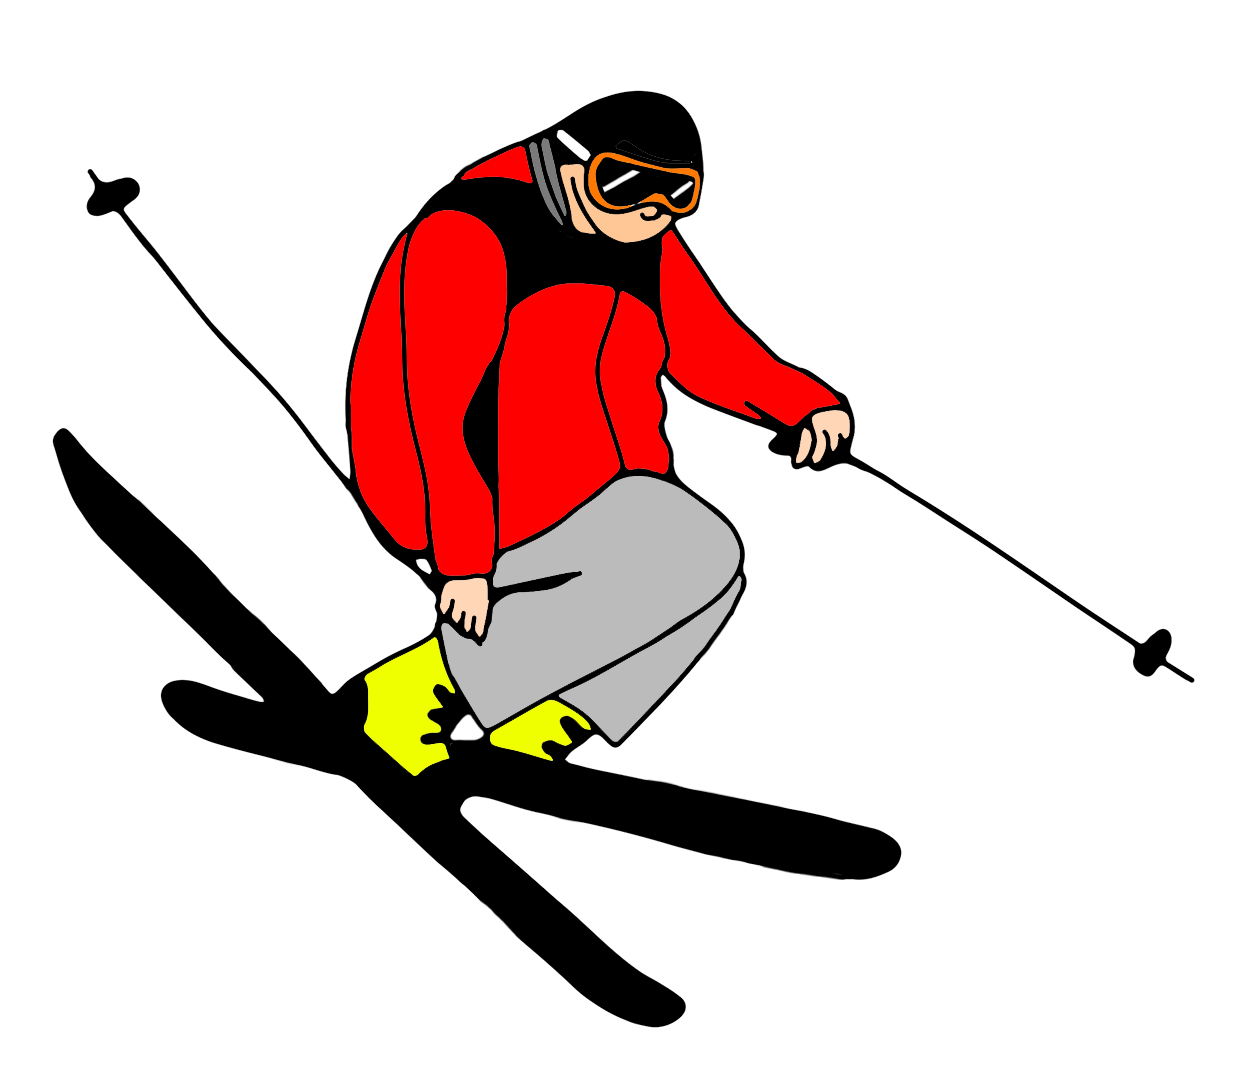 Skiing or Snowboarding? That is the question…